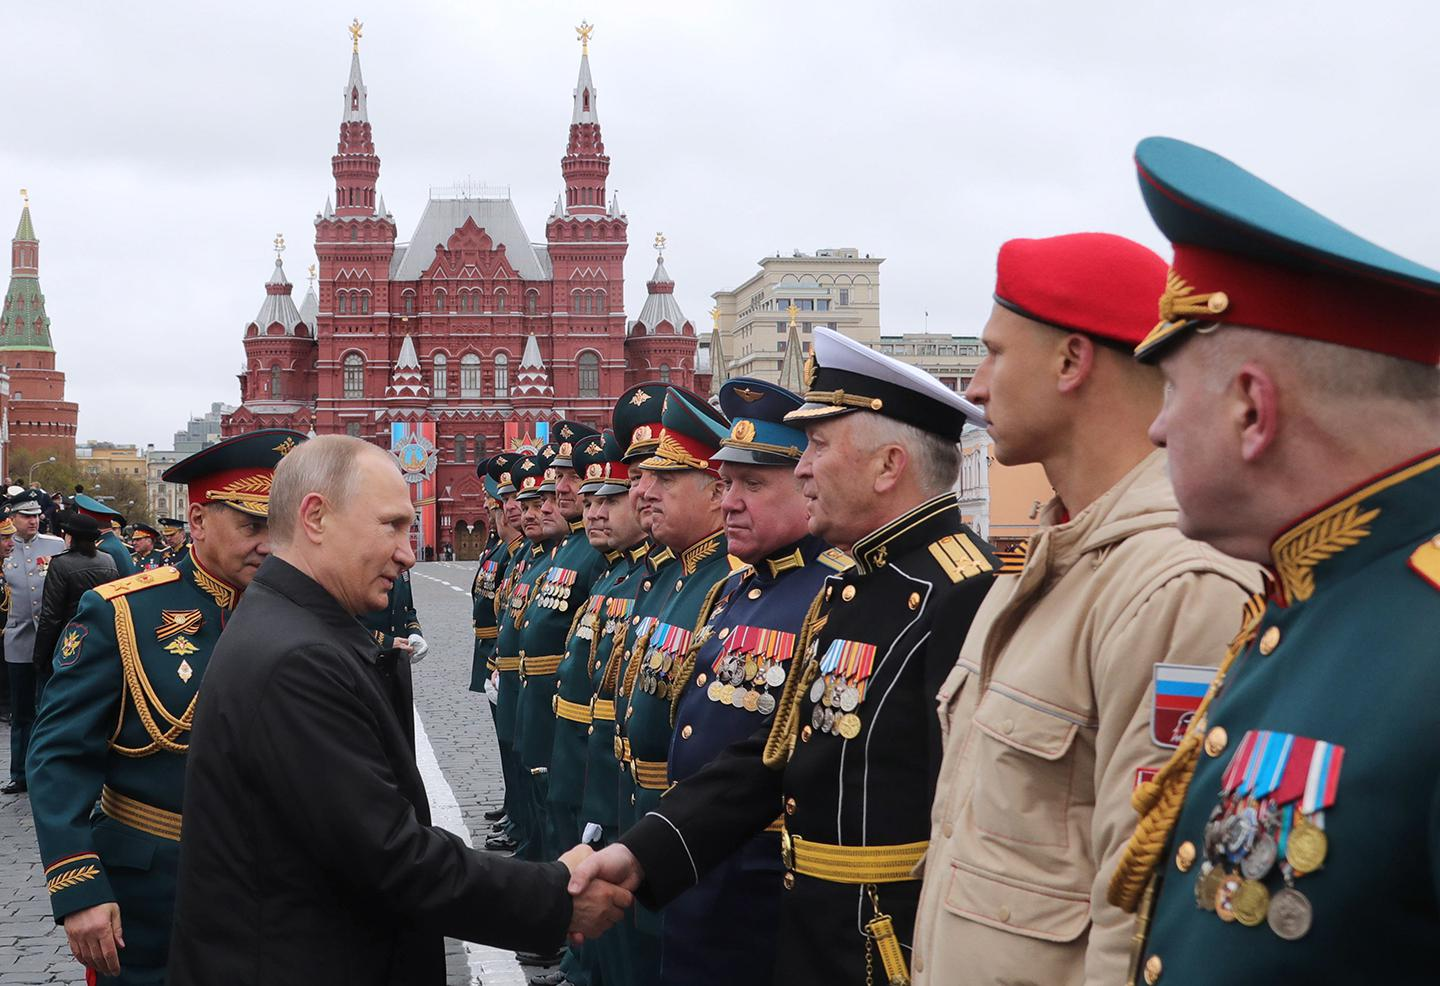 Russia's President Vladimir Putin in Moscow's Red Square after a Victory Day military parade marking the 72nd anniversary of the victory over Nazi Germany in the 1941-1945 Great Patriotic War, the Eastern Front of World War II.